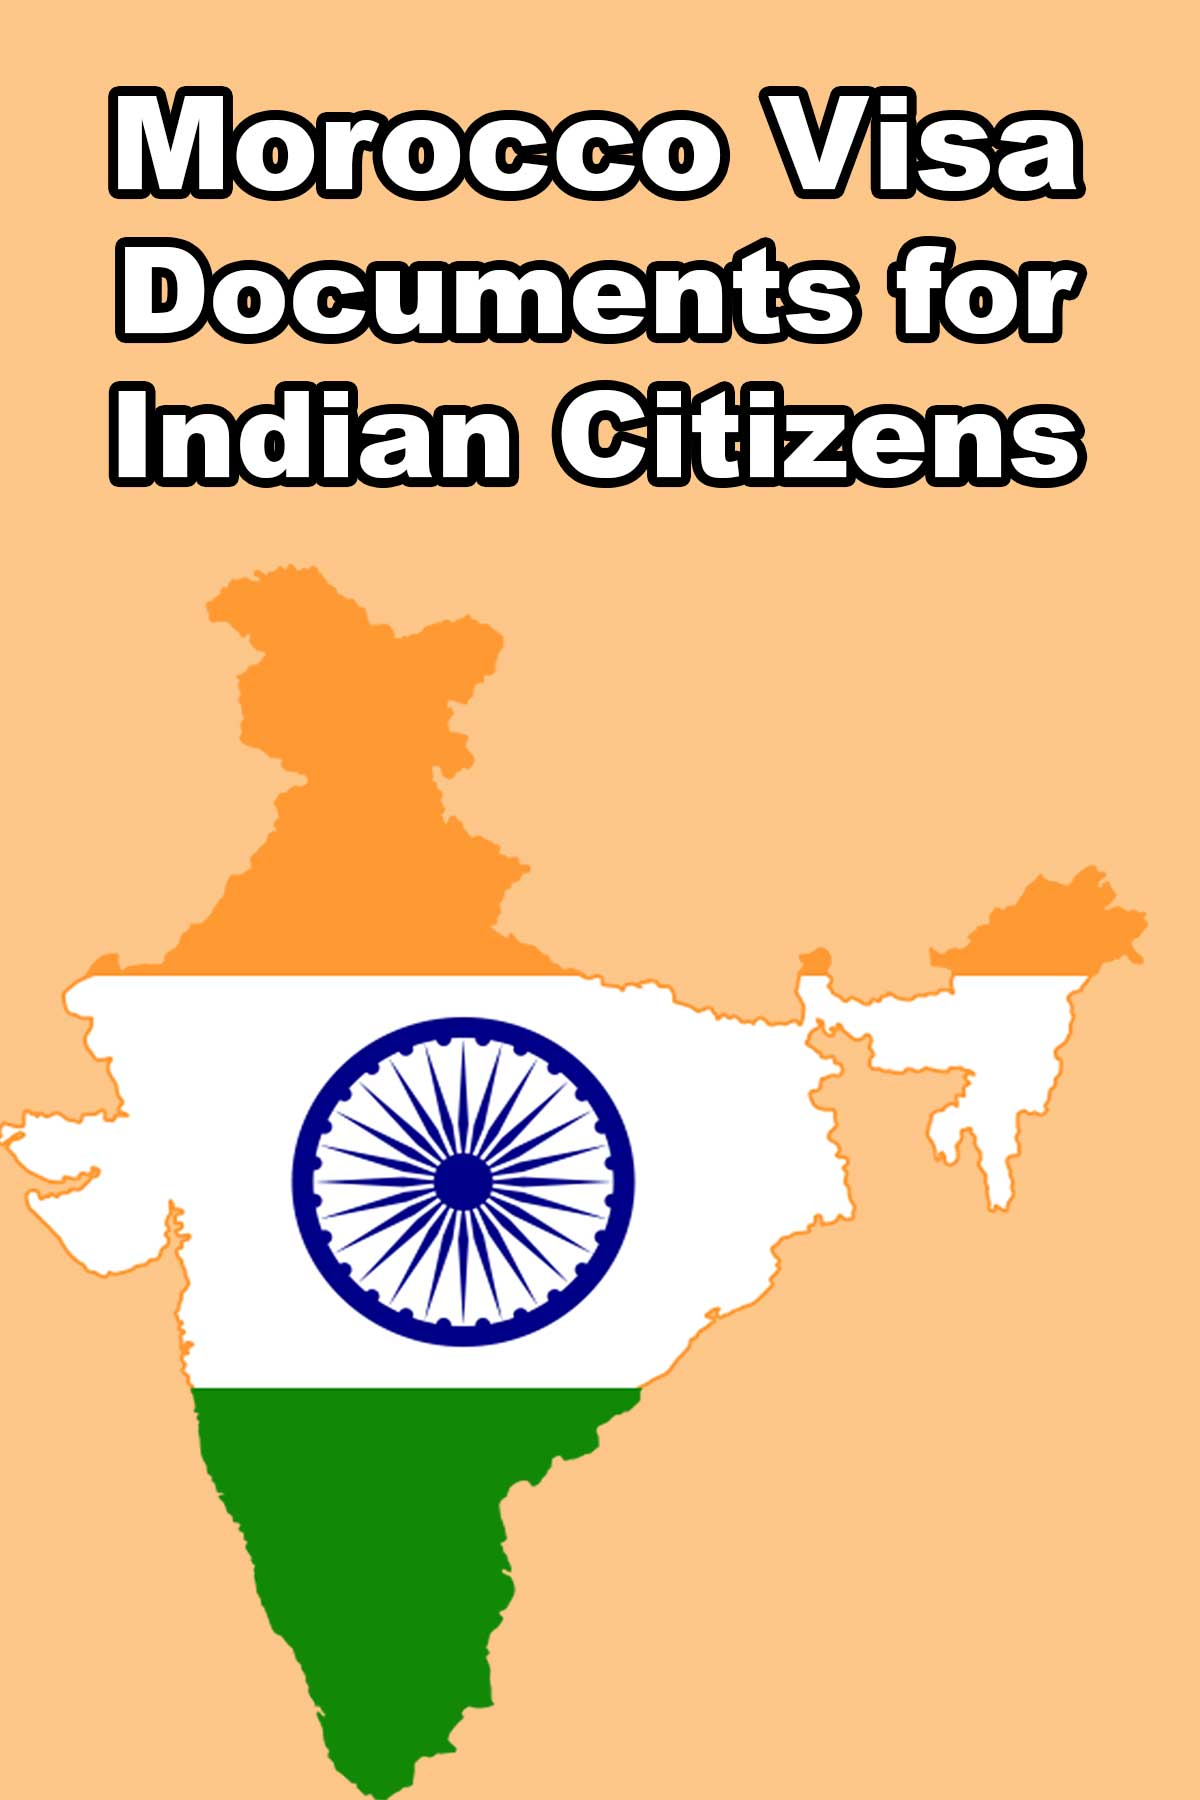 Morocco-Visa-Requirements-for-Indian-Citizens-2